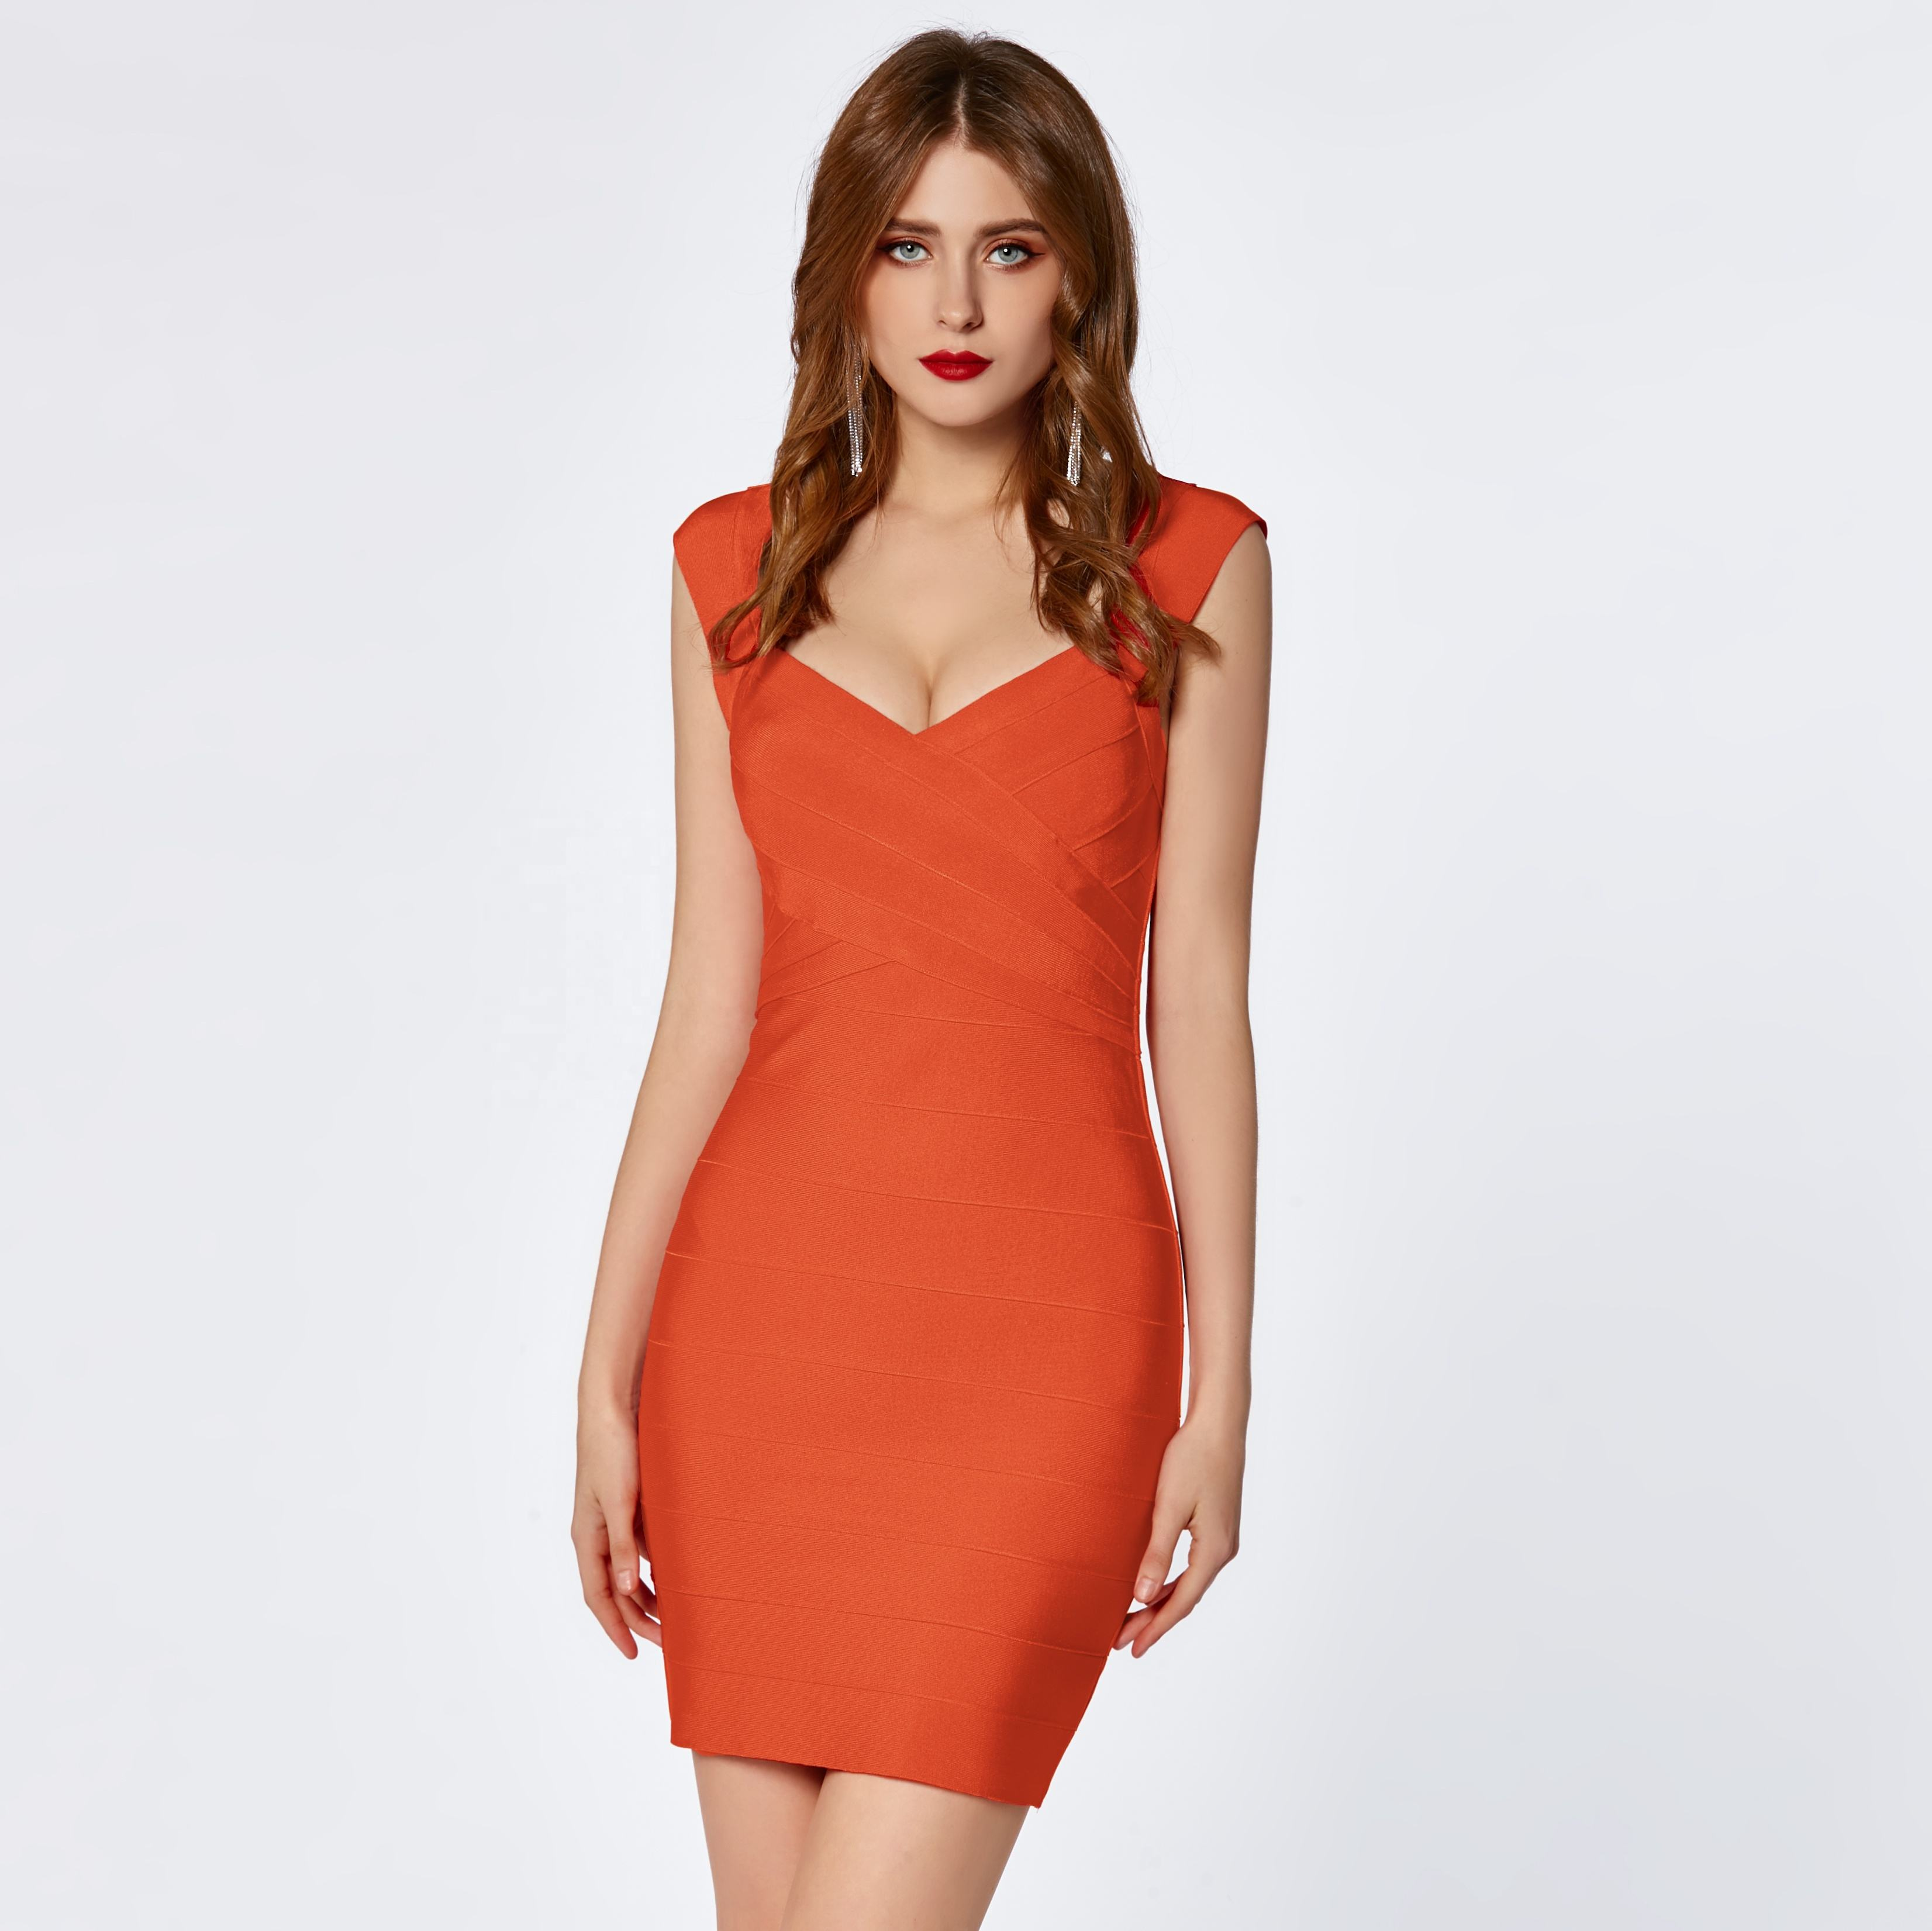 2020 OEM factory women classic orange backless evening party mini bodycon bandage dress sexy